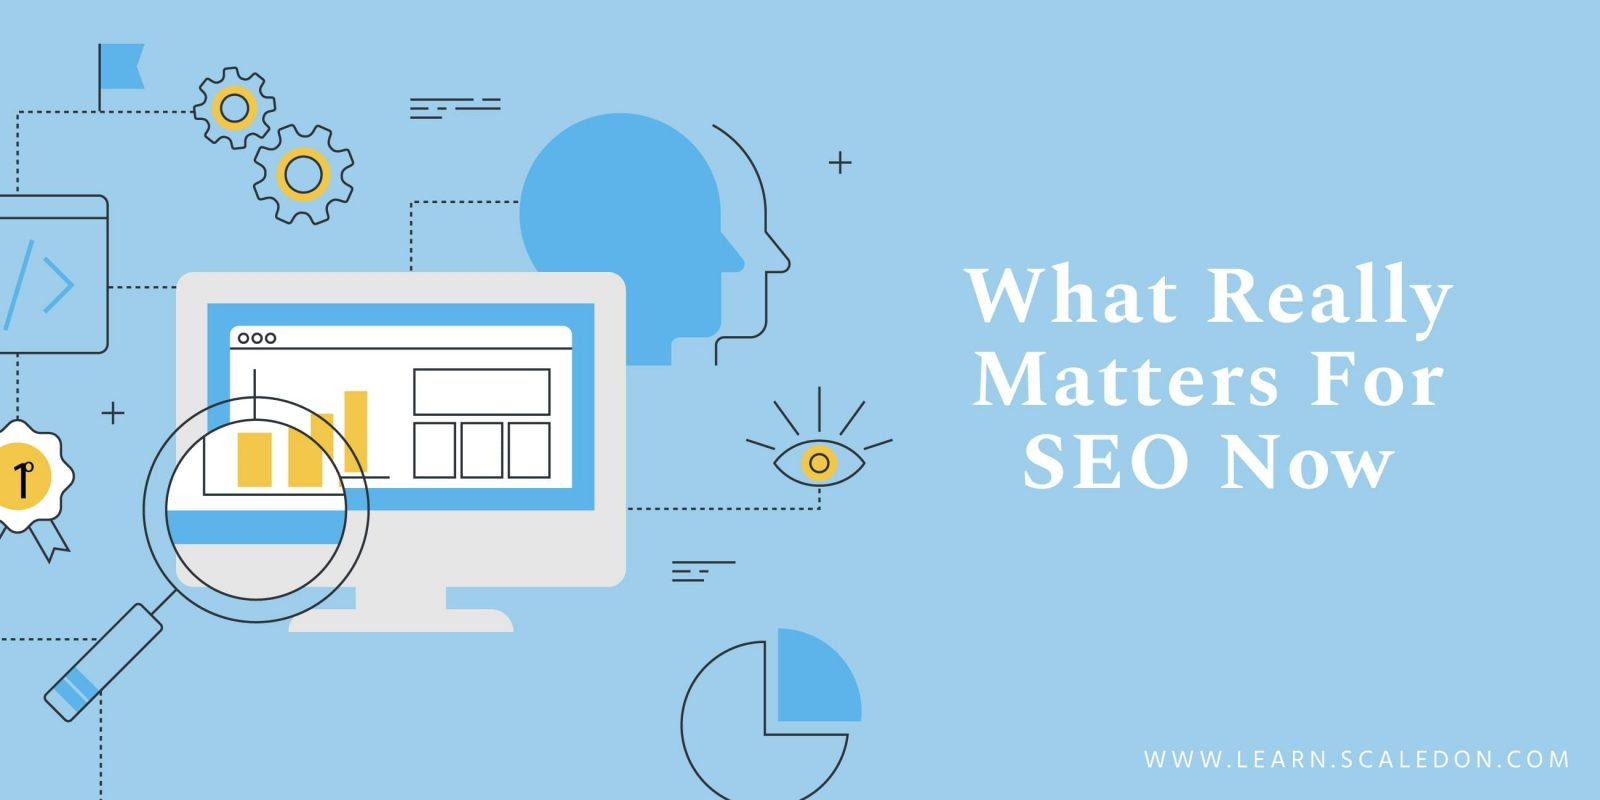 What Really Matters For SEO Now